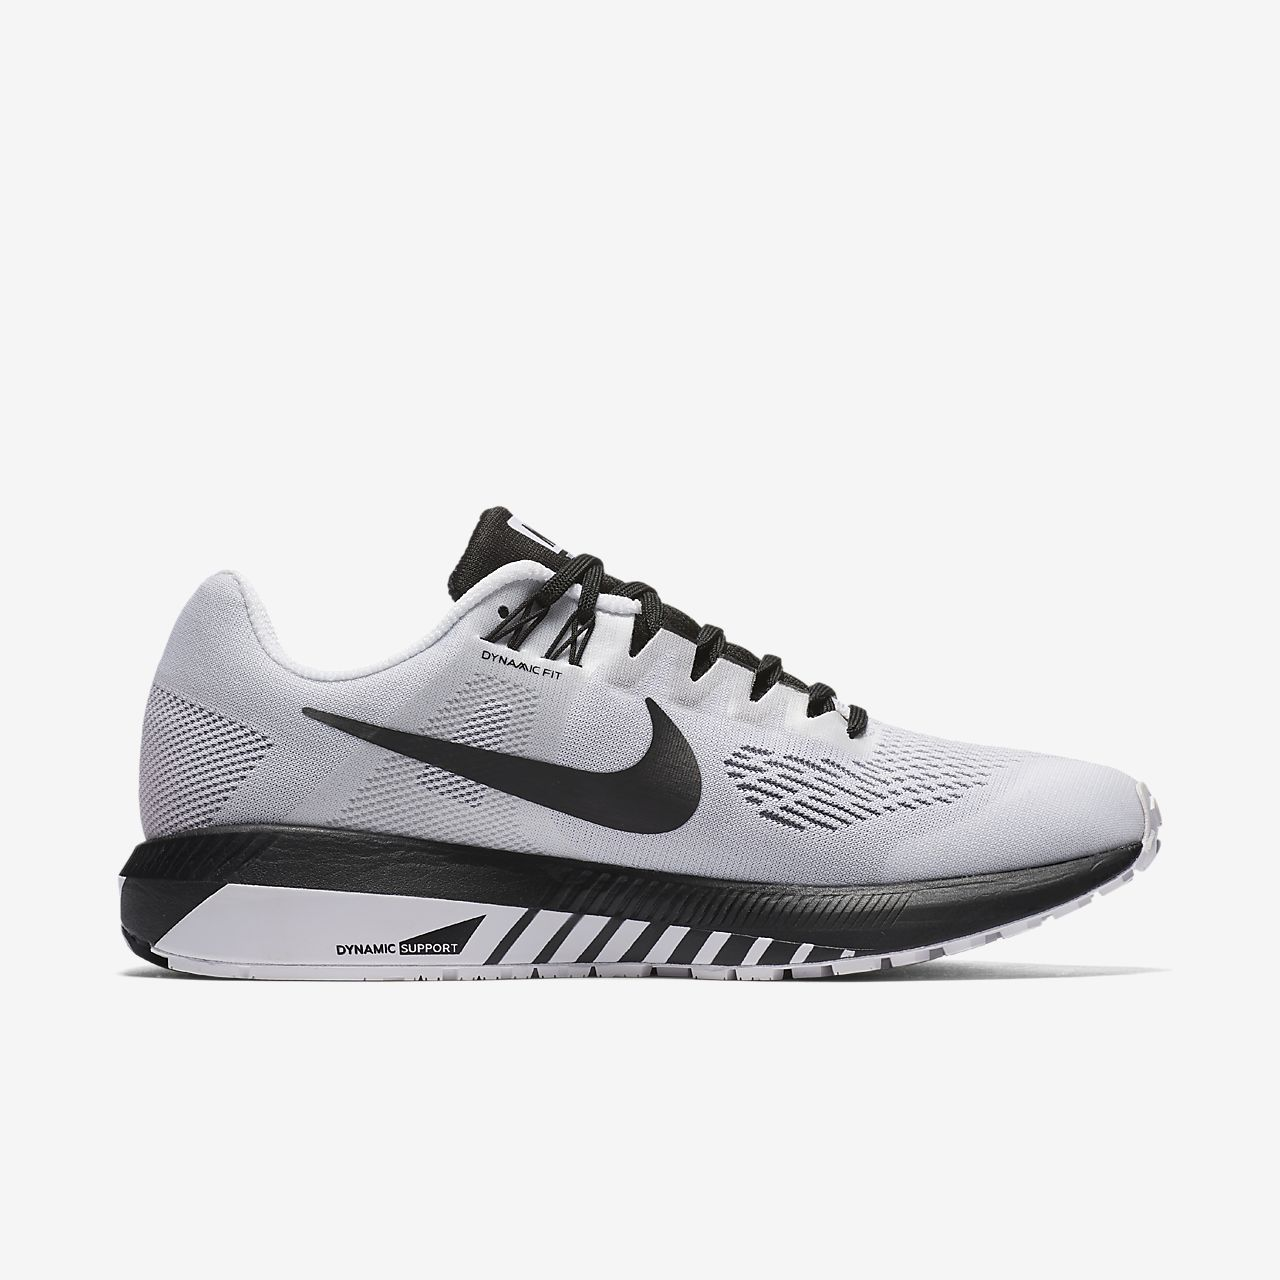 ... Nike Air Zoom Structure 21 Limited Edition Women's Running Shoe